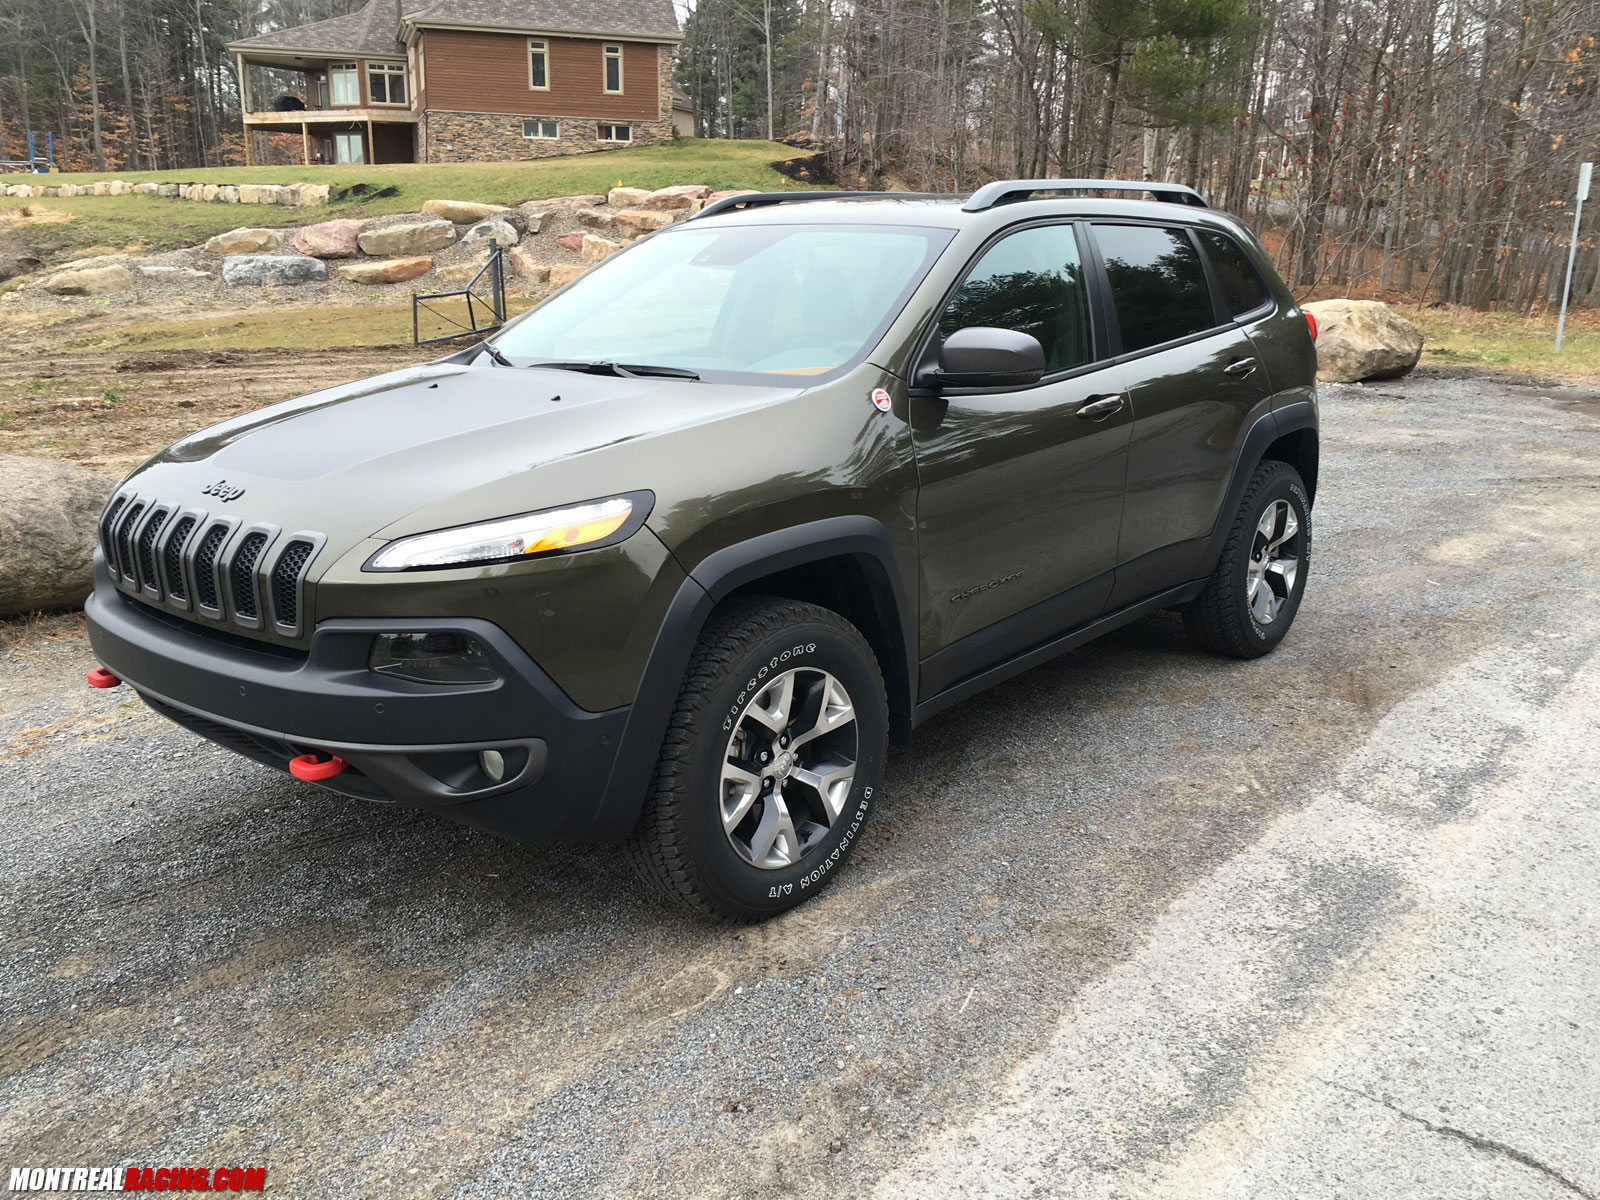 2016 jeep cherokee trailhawk review. Black Bedroom Furniture Sets. Home Design Ideas